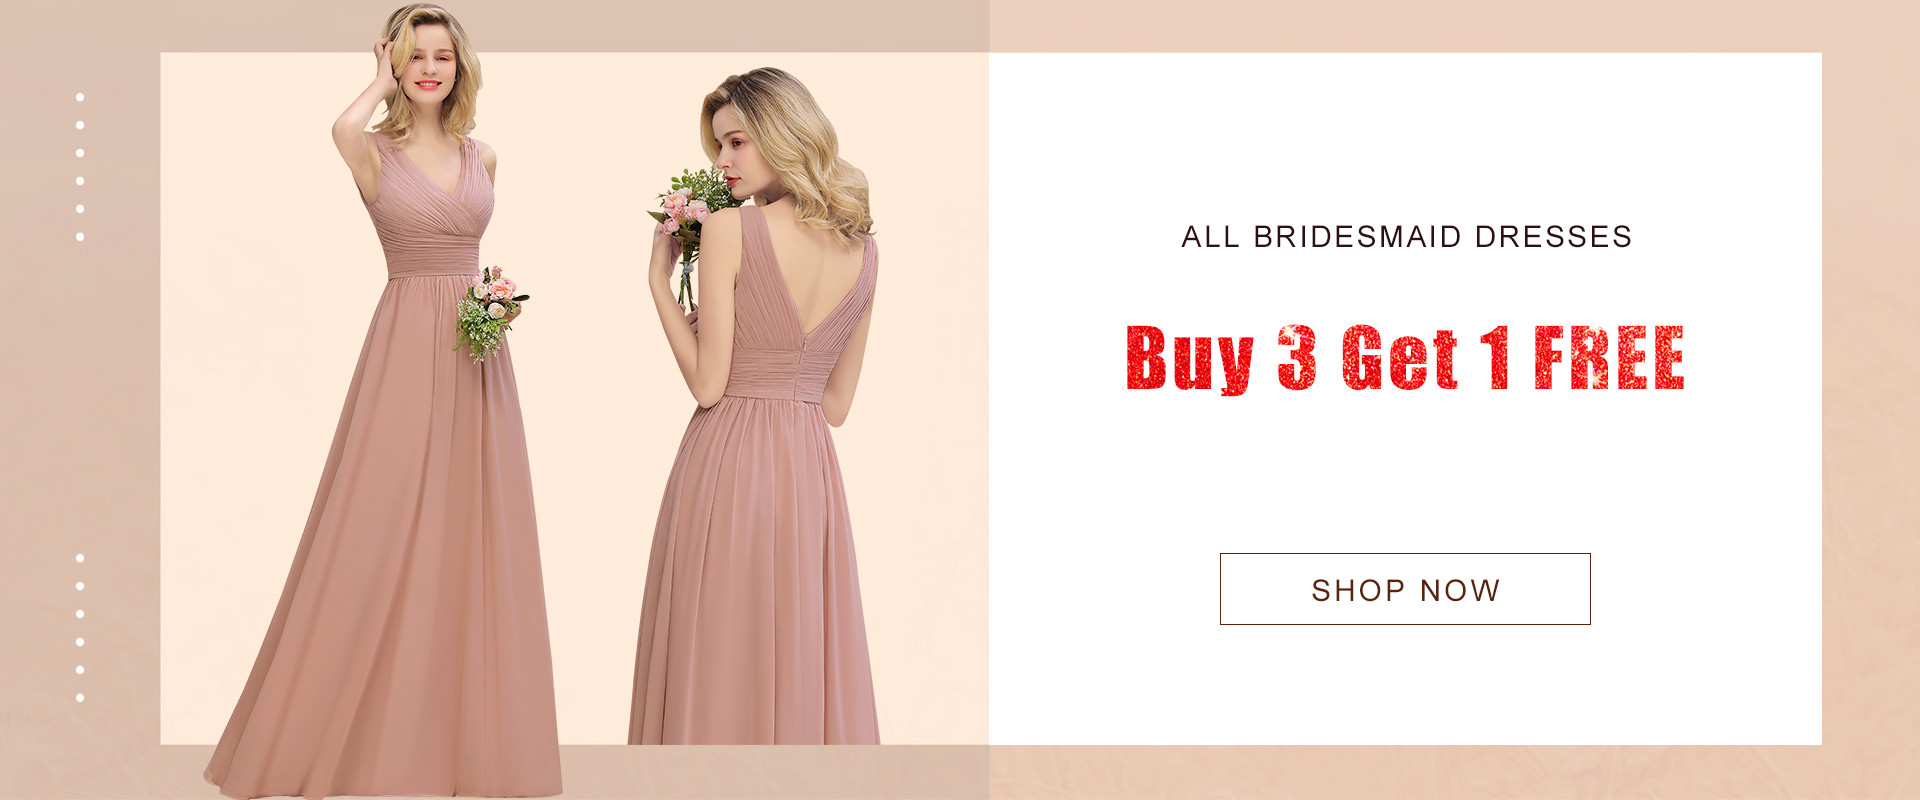 bridesmaid dress on sale